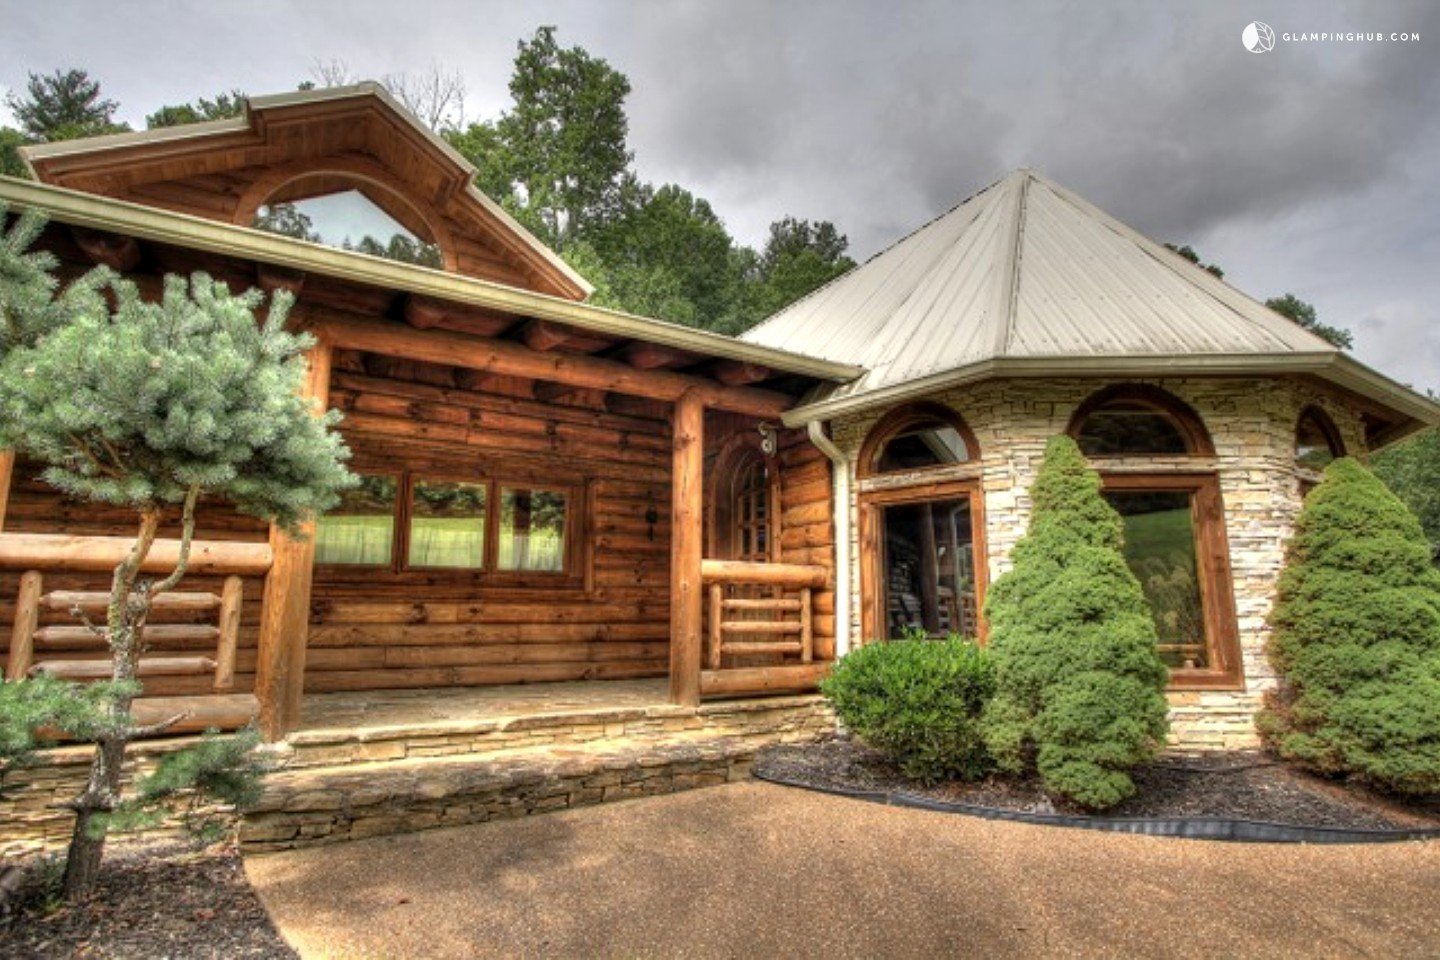 Luxury cabin rental near the great smoky mountains for Cabin rentals near smoky mountains